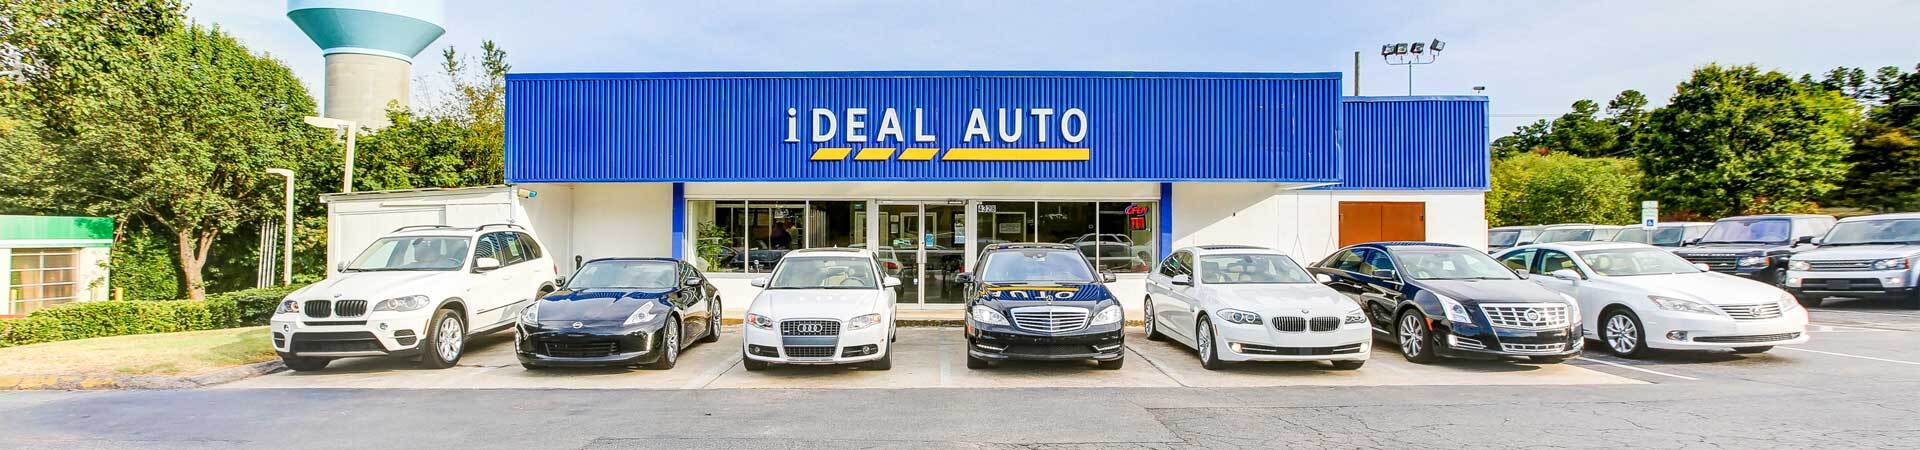 Pre Owned Car Dealership Raleigh Nc Ideal Auto